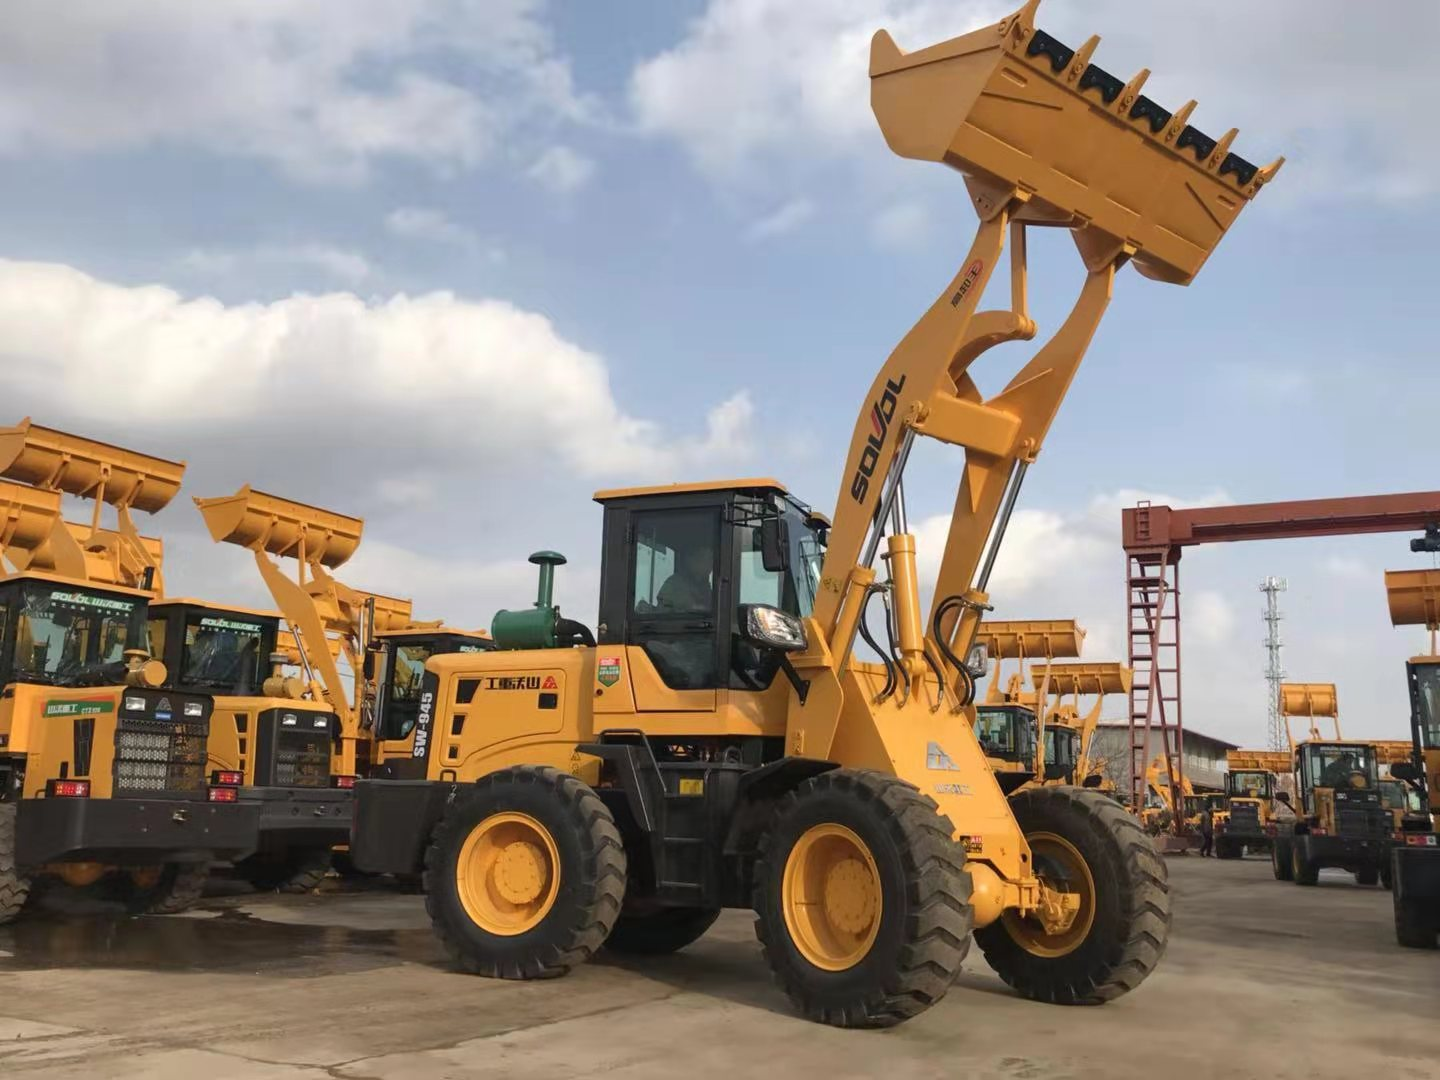 SW940 cheap price wheel loader with heater,4.5m dumping height wheel loader for sale